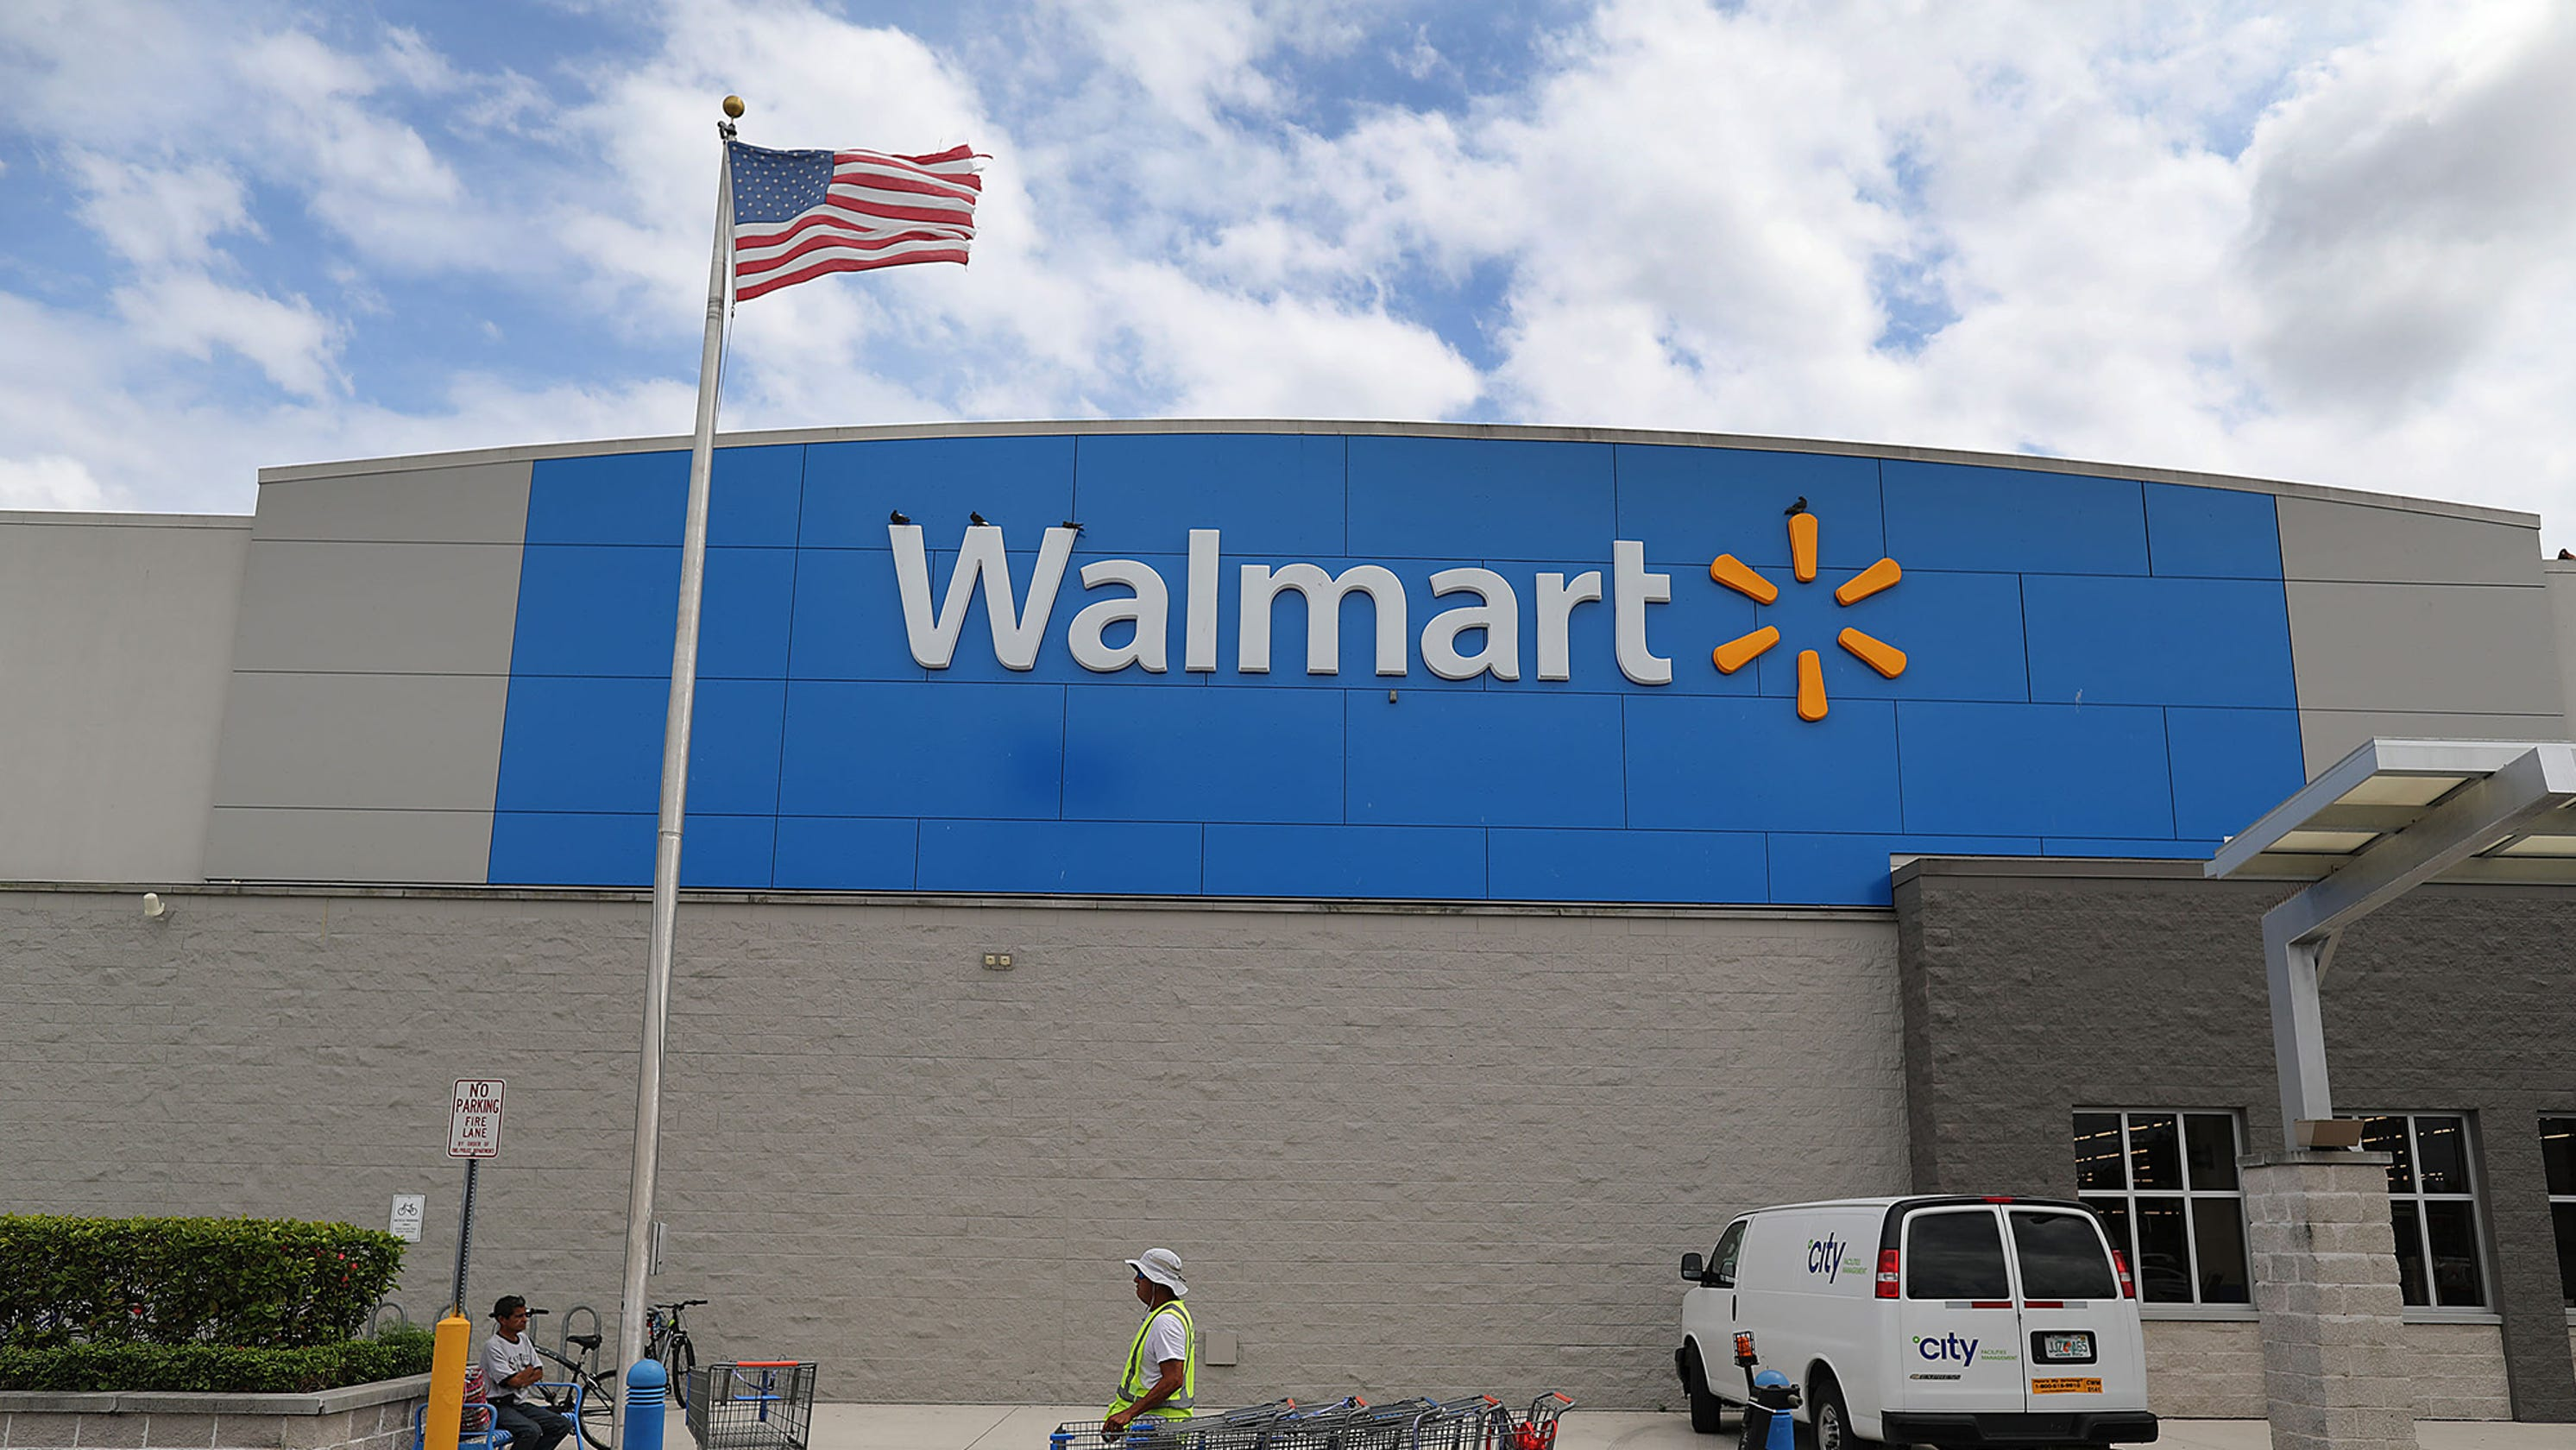 Florida man threatens to 'shoot up' Walmart, one day after